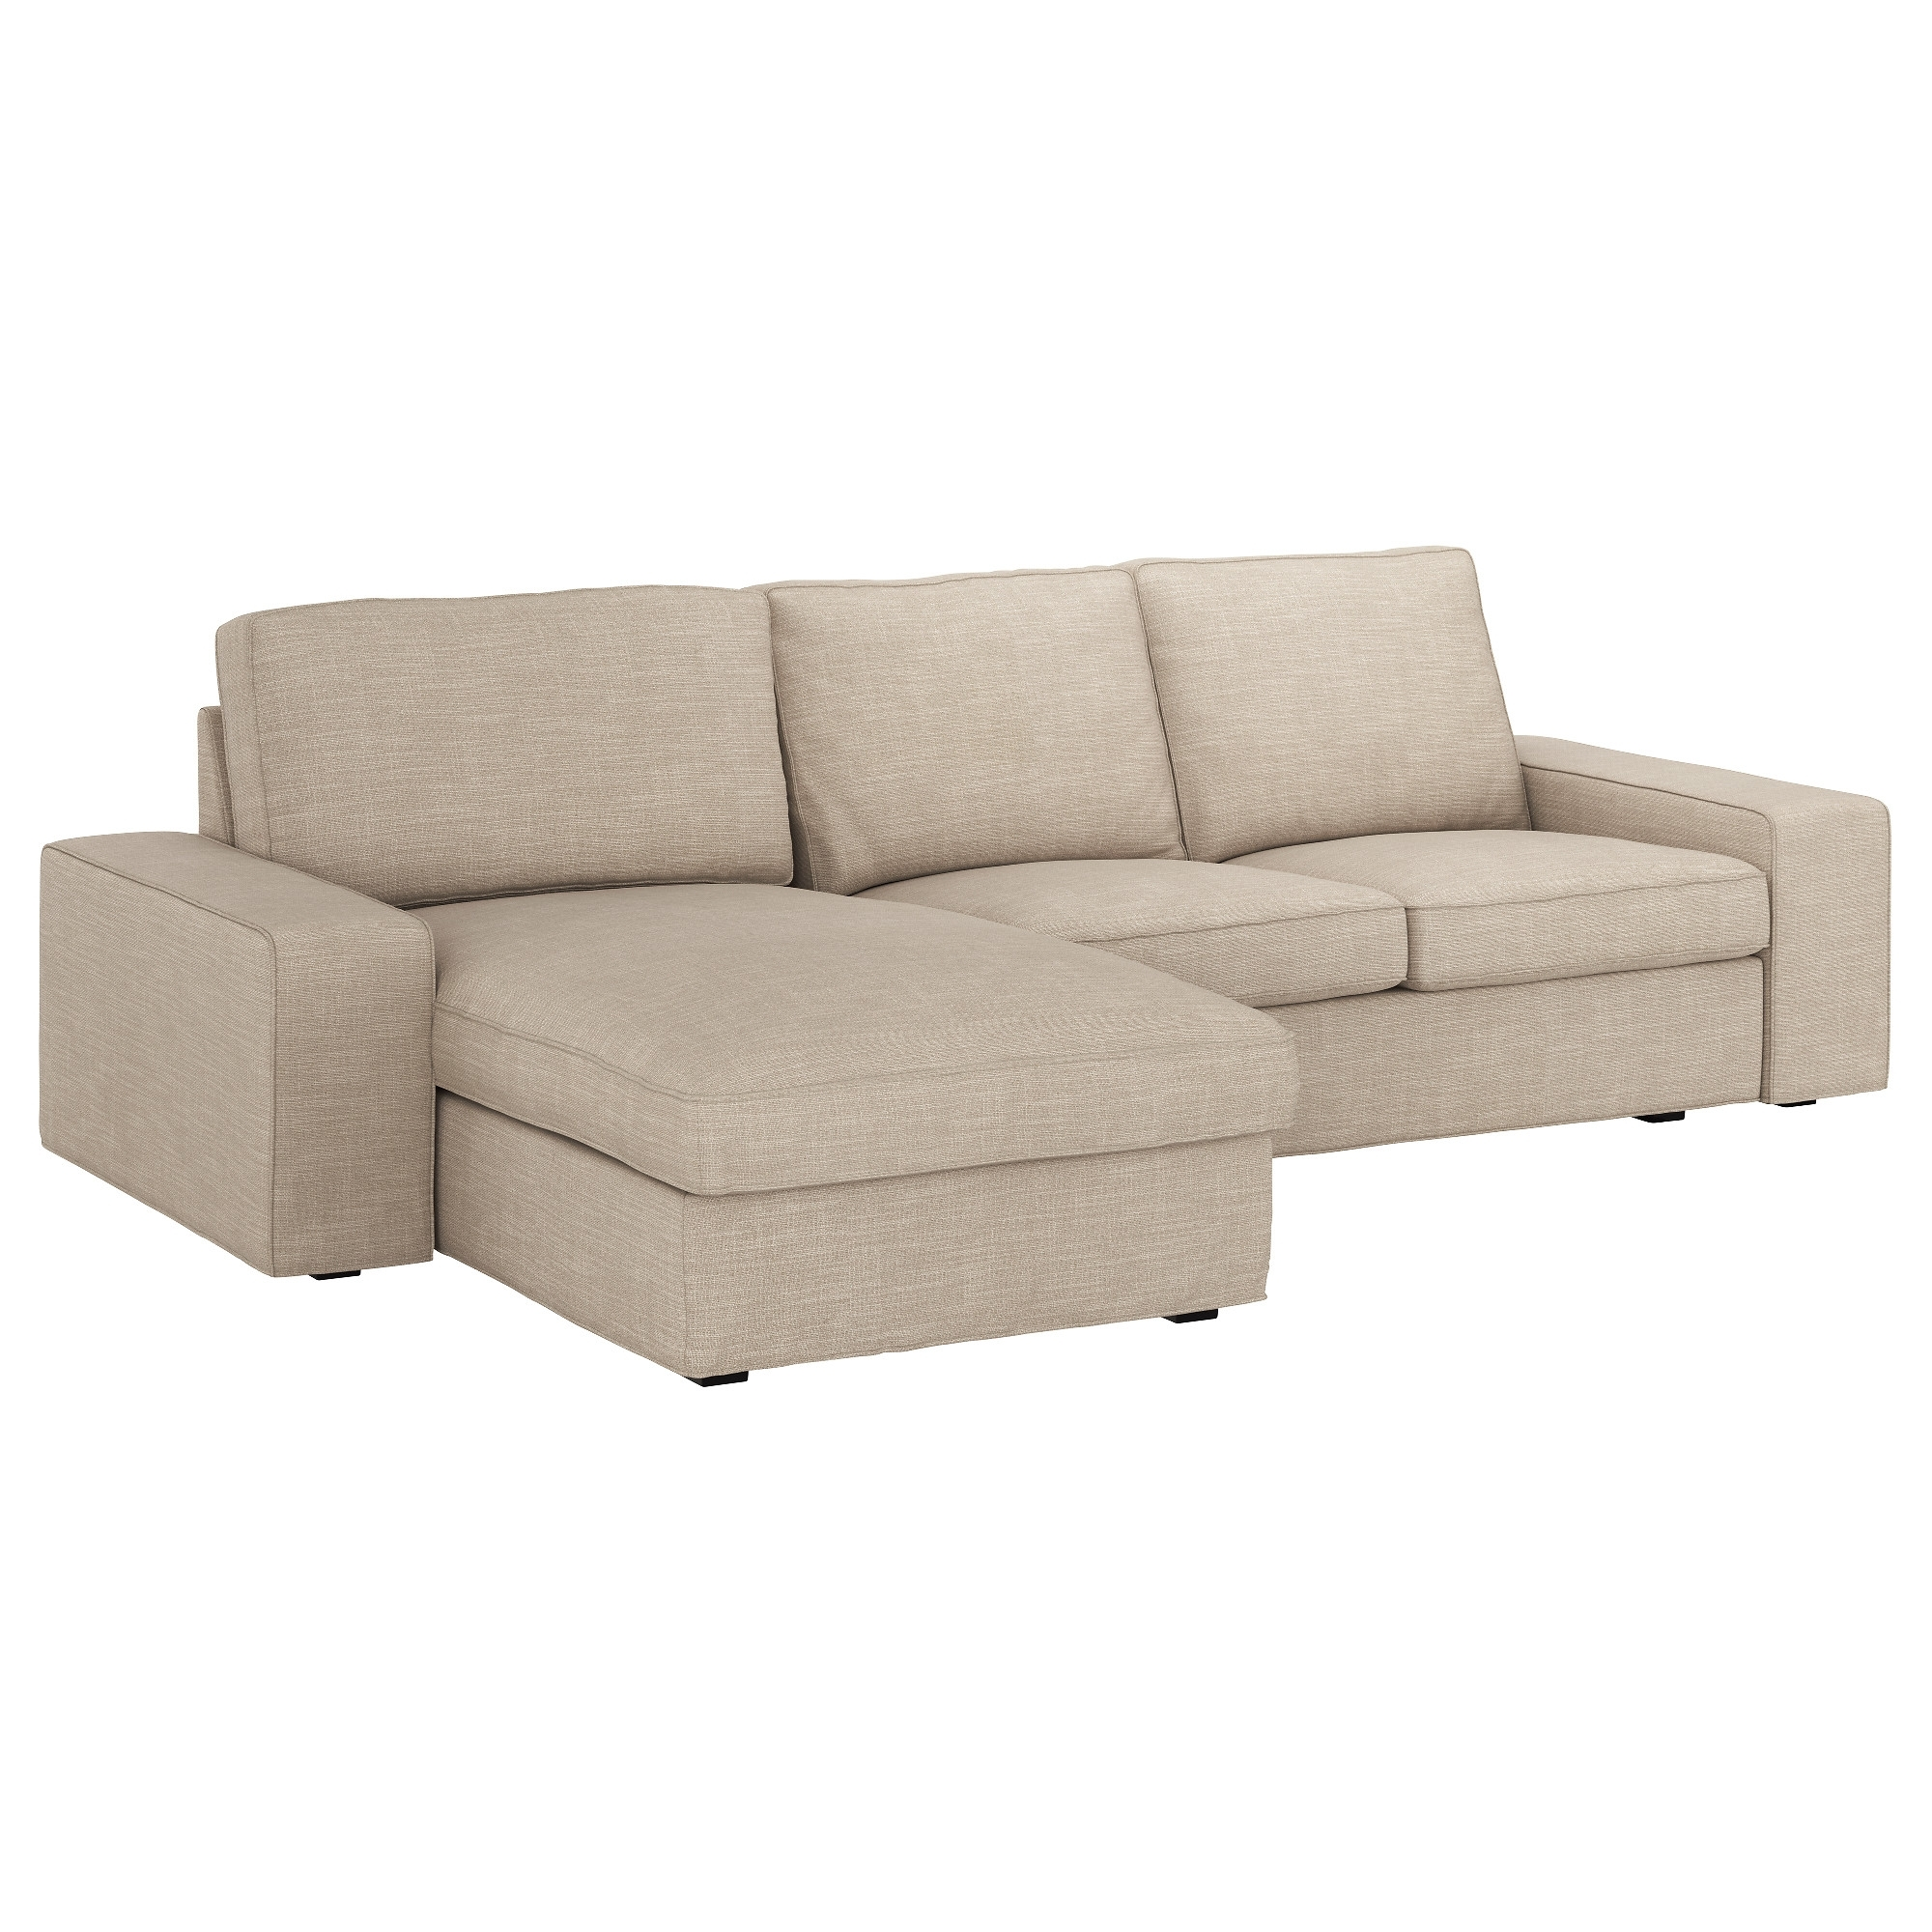 Well Known Kivik Sofa – With Chaise/hillared Anthracite – Ikea Within Sofas With Chaise Lounge (View 15 of 15)